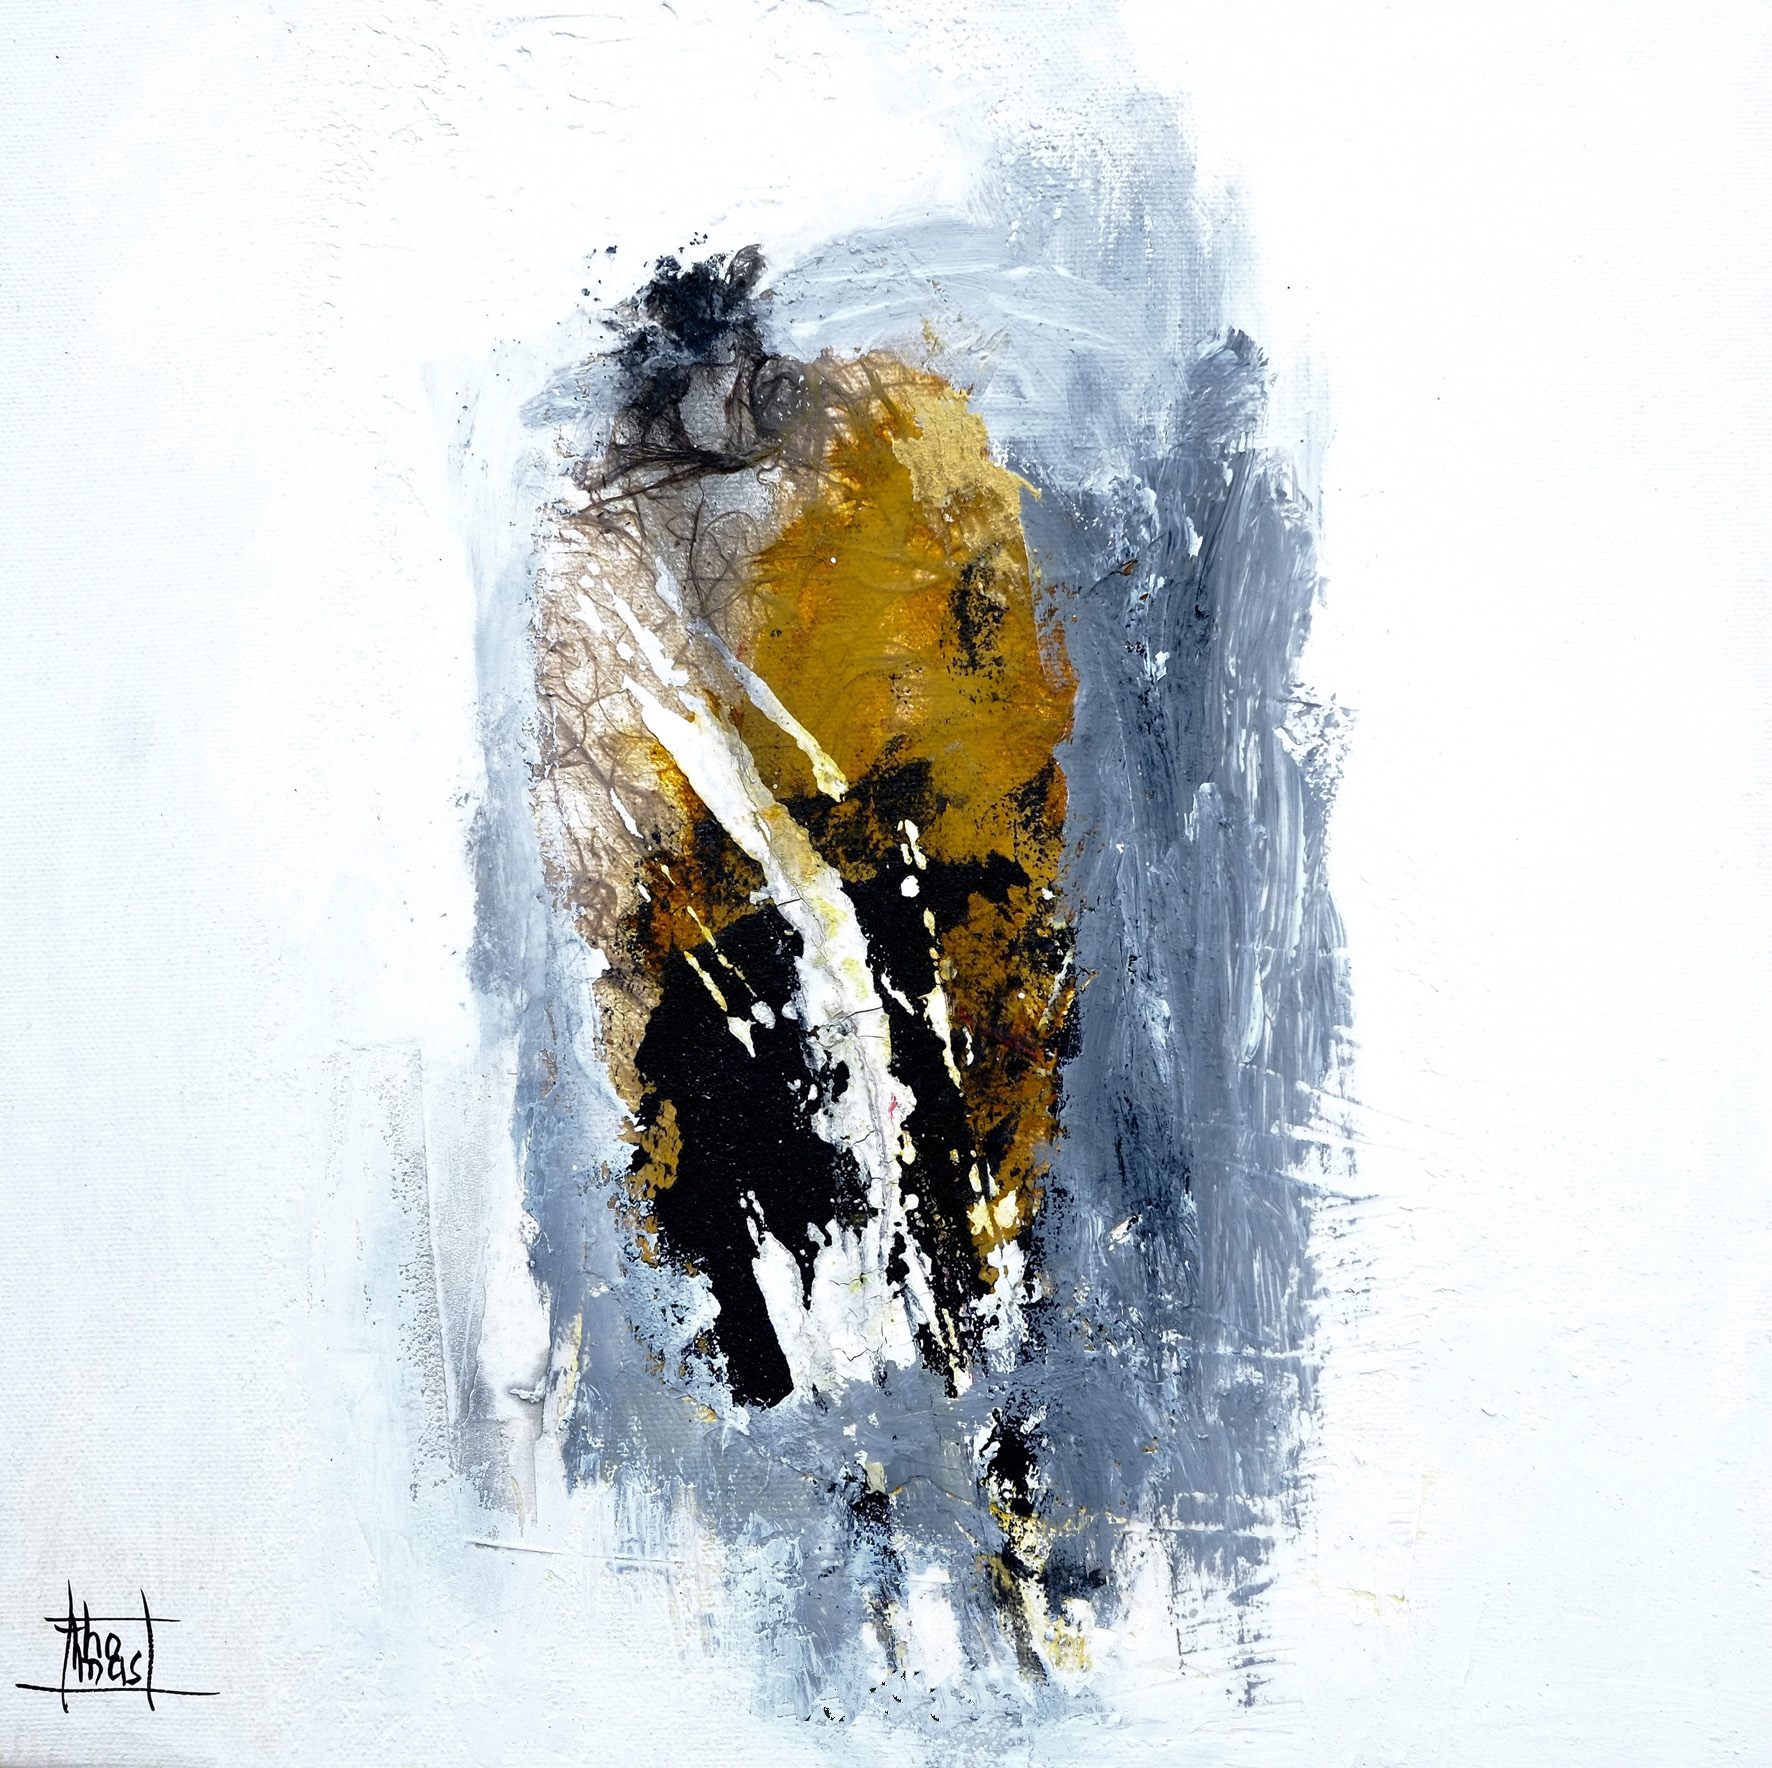 apparition ee30x30 cm